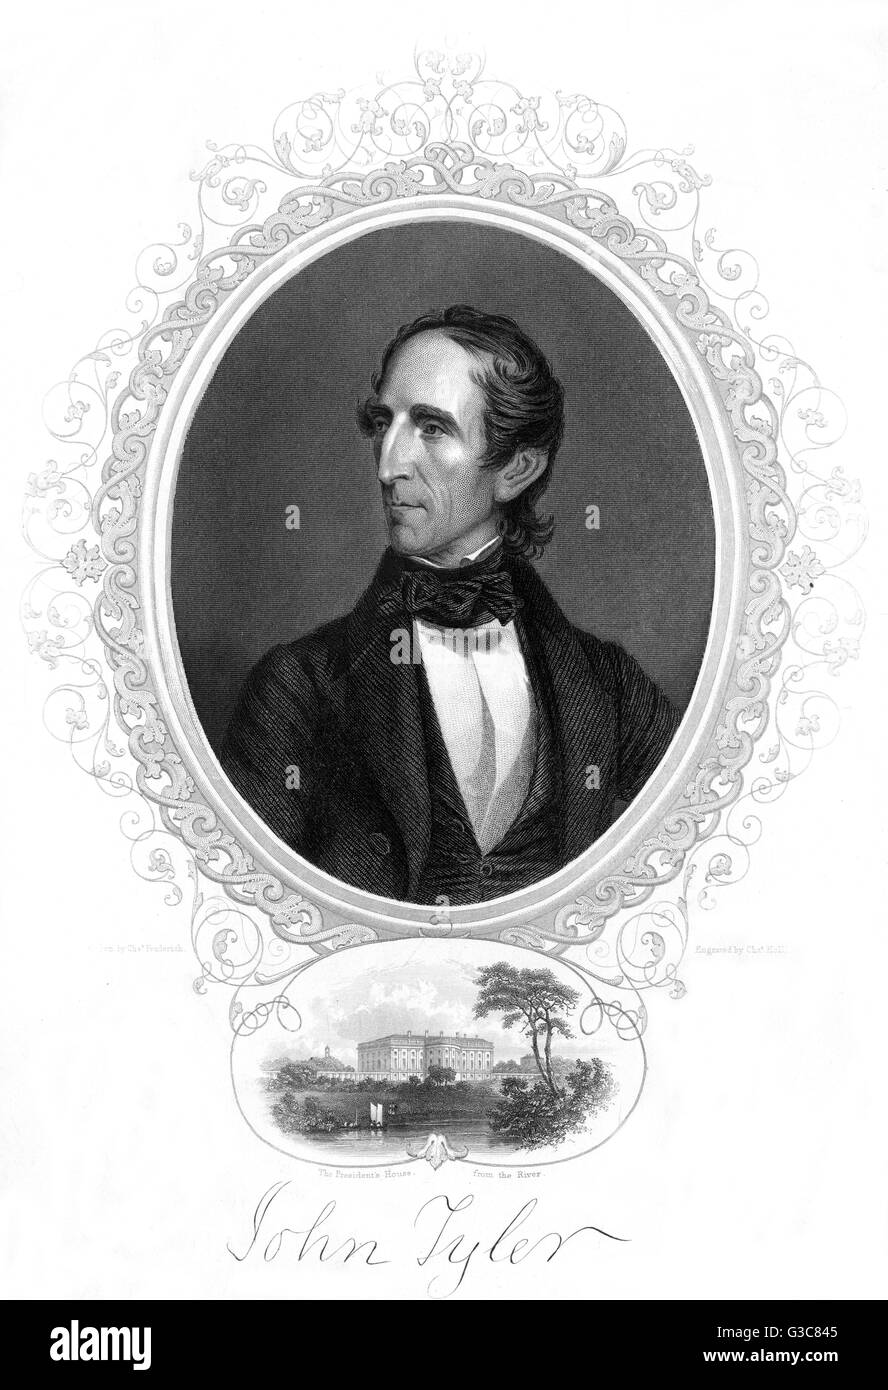 JOHN TYLER President of the United States         Date: 1790 - 1862 - Stock Image